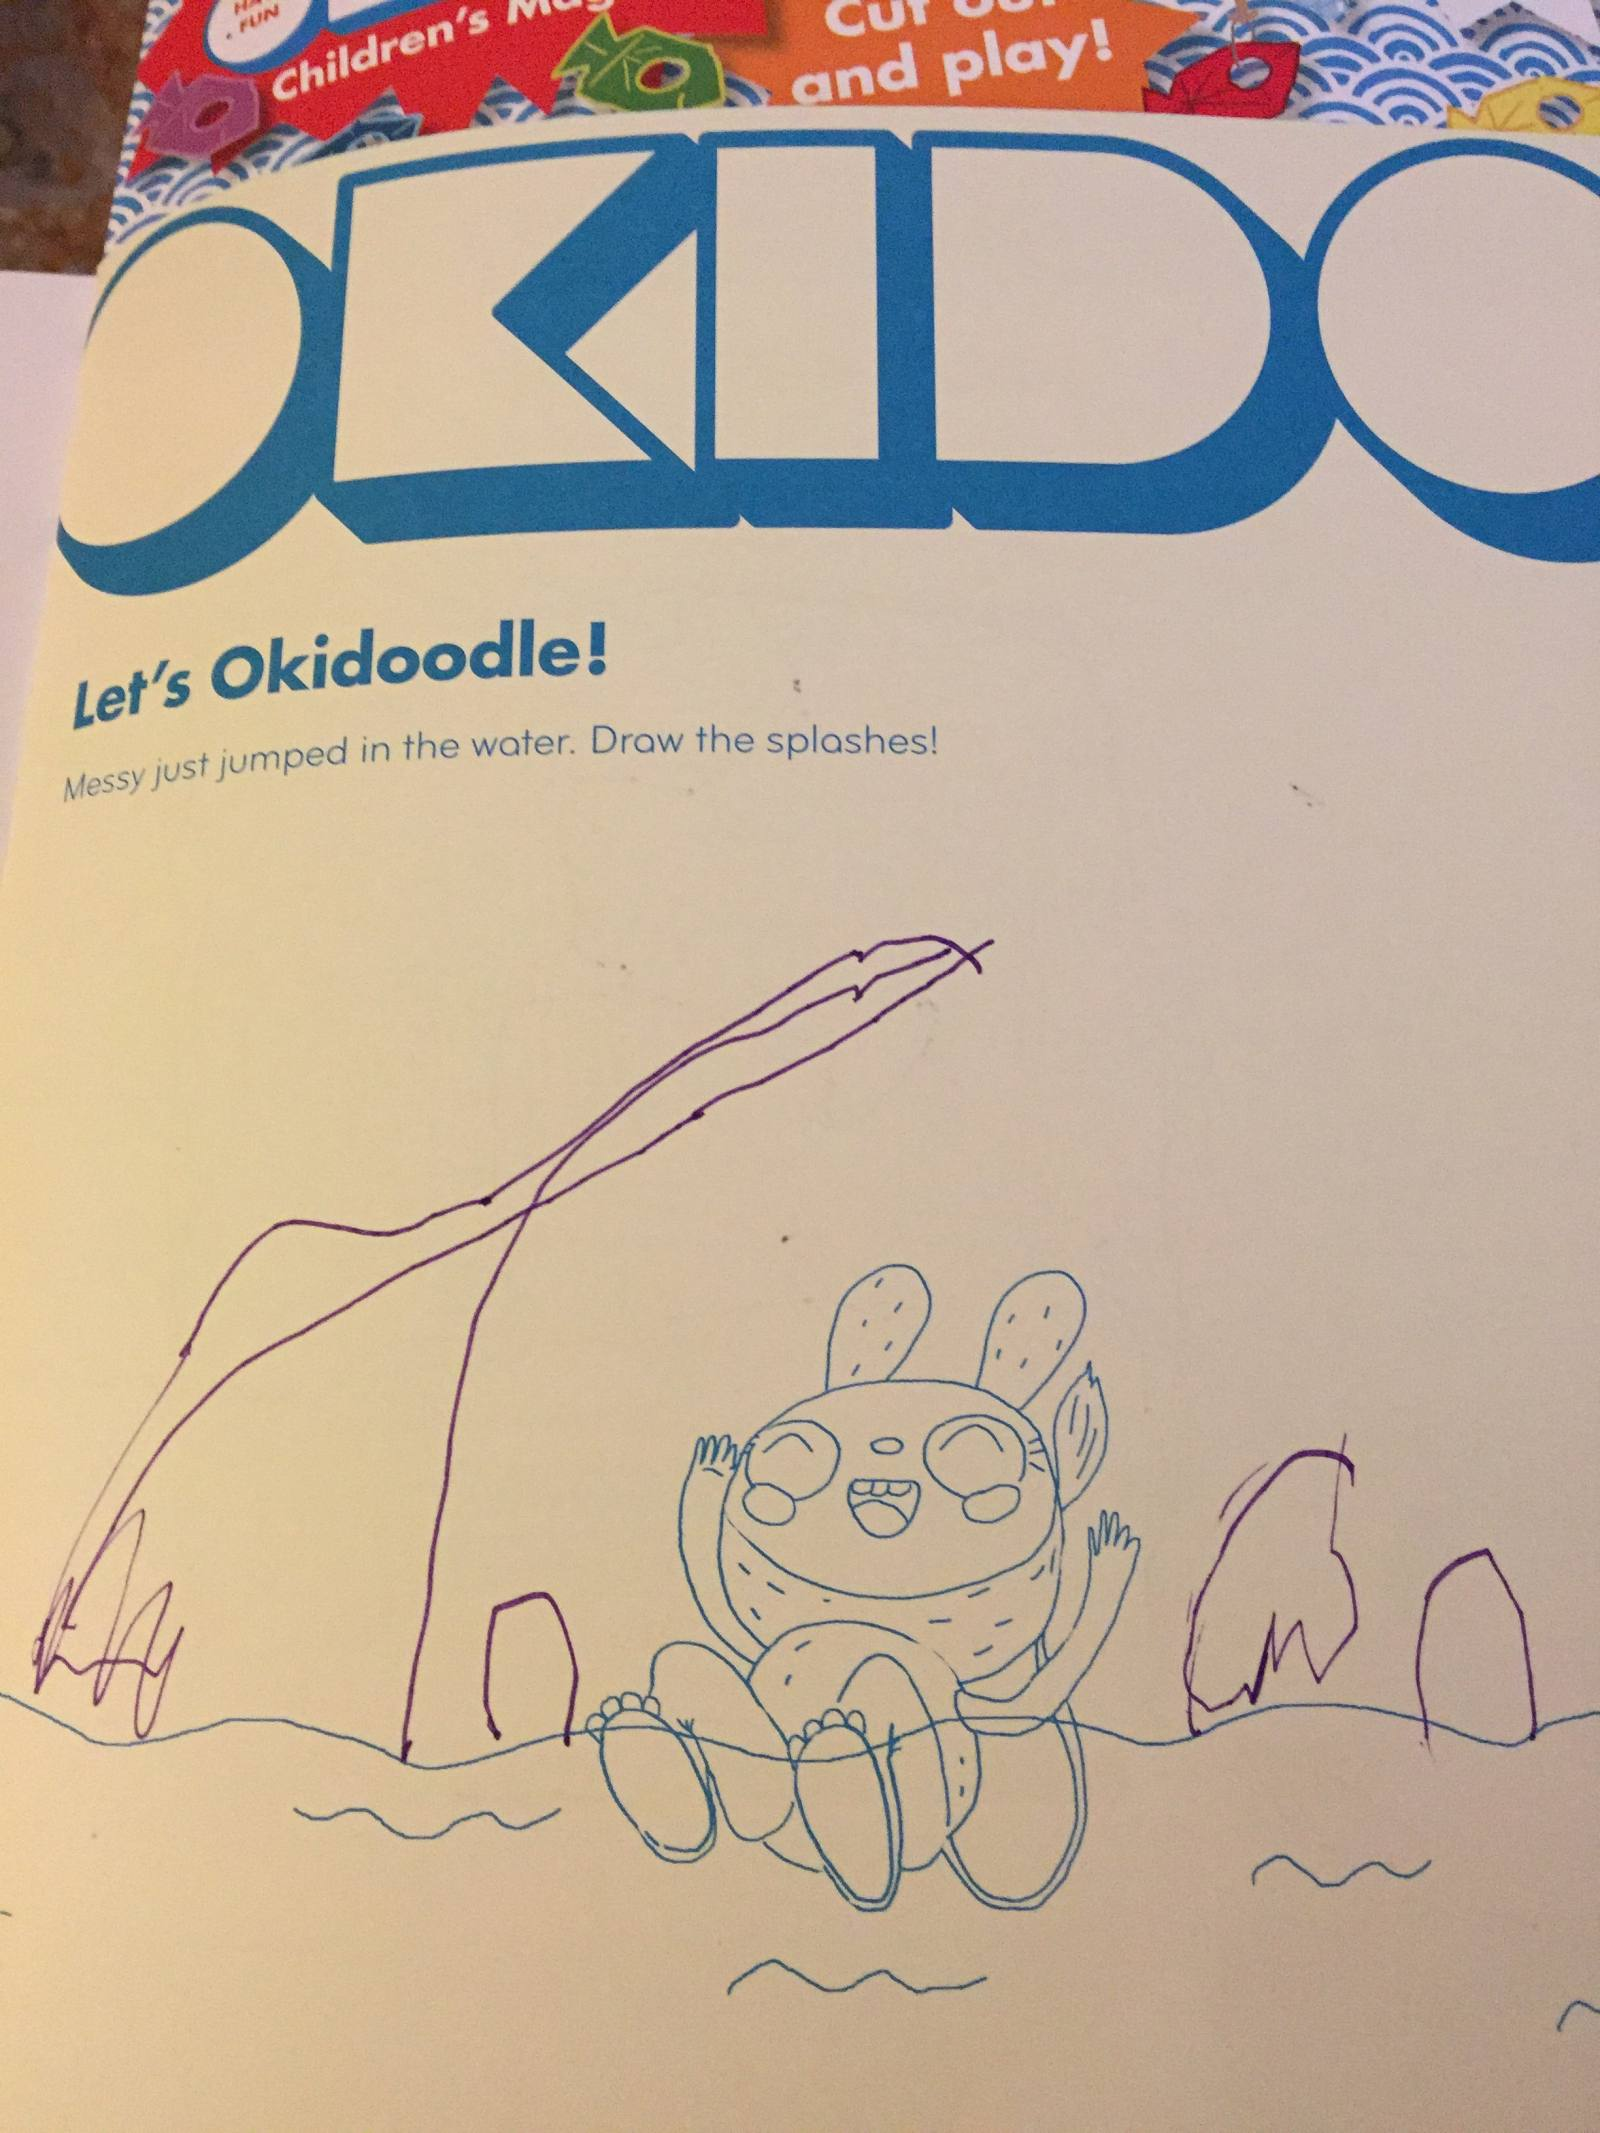 okidoodle in okido children's magazine messy jumped in water child draws the splash